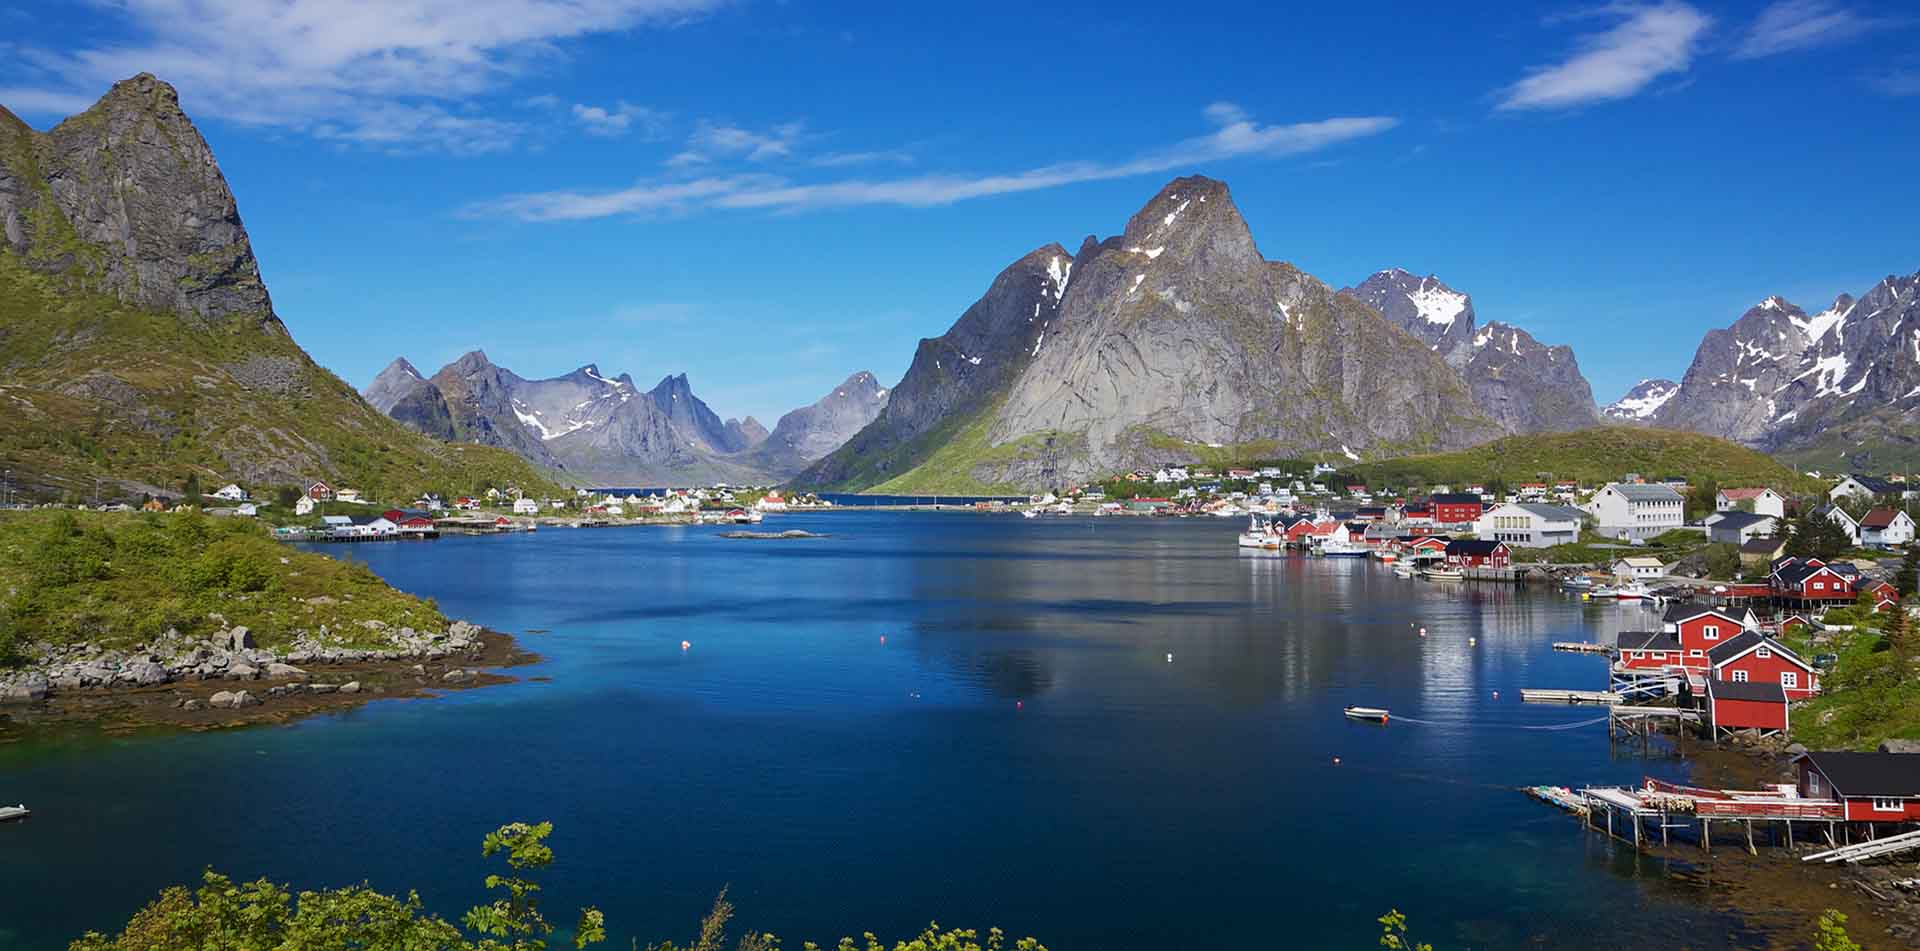 Scenic Fishing Town Near Fjords in Norway